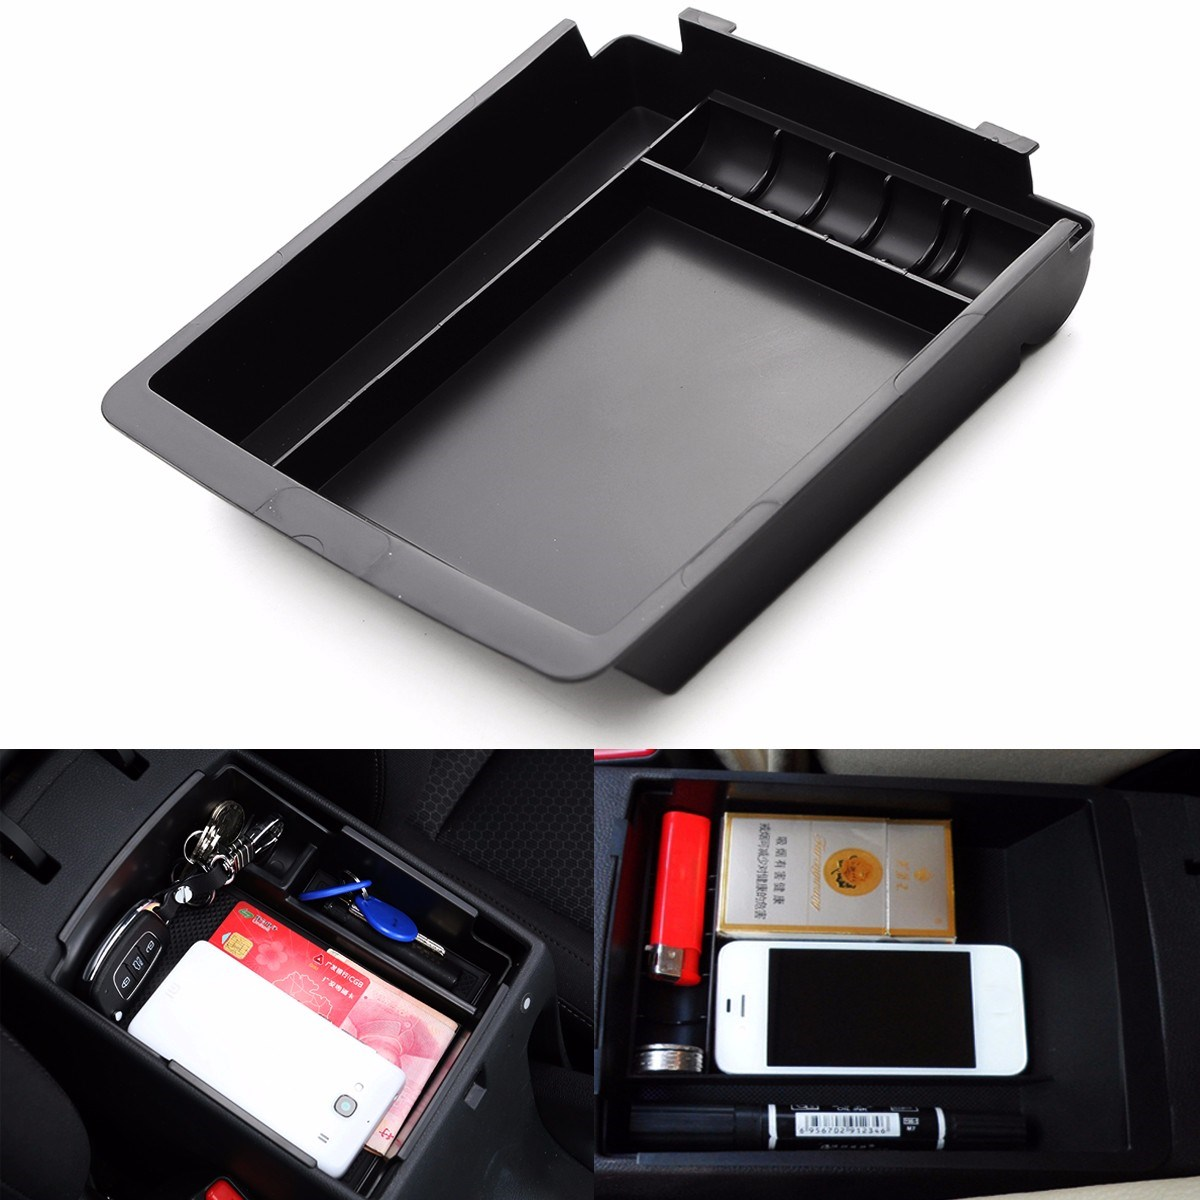 ABS Armrest Secondary Storage Box Center Console For HYUNDAI for ELANTRA 2011 2012 2013 2014 2015 187 x 165 x 35mm ветровики korea hyundai elantra 2013 avante md 2013